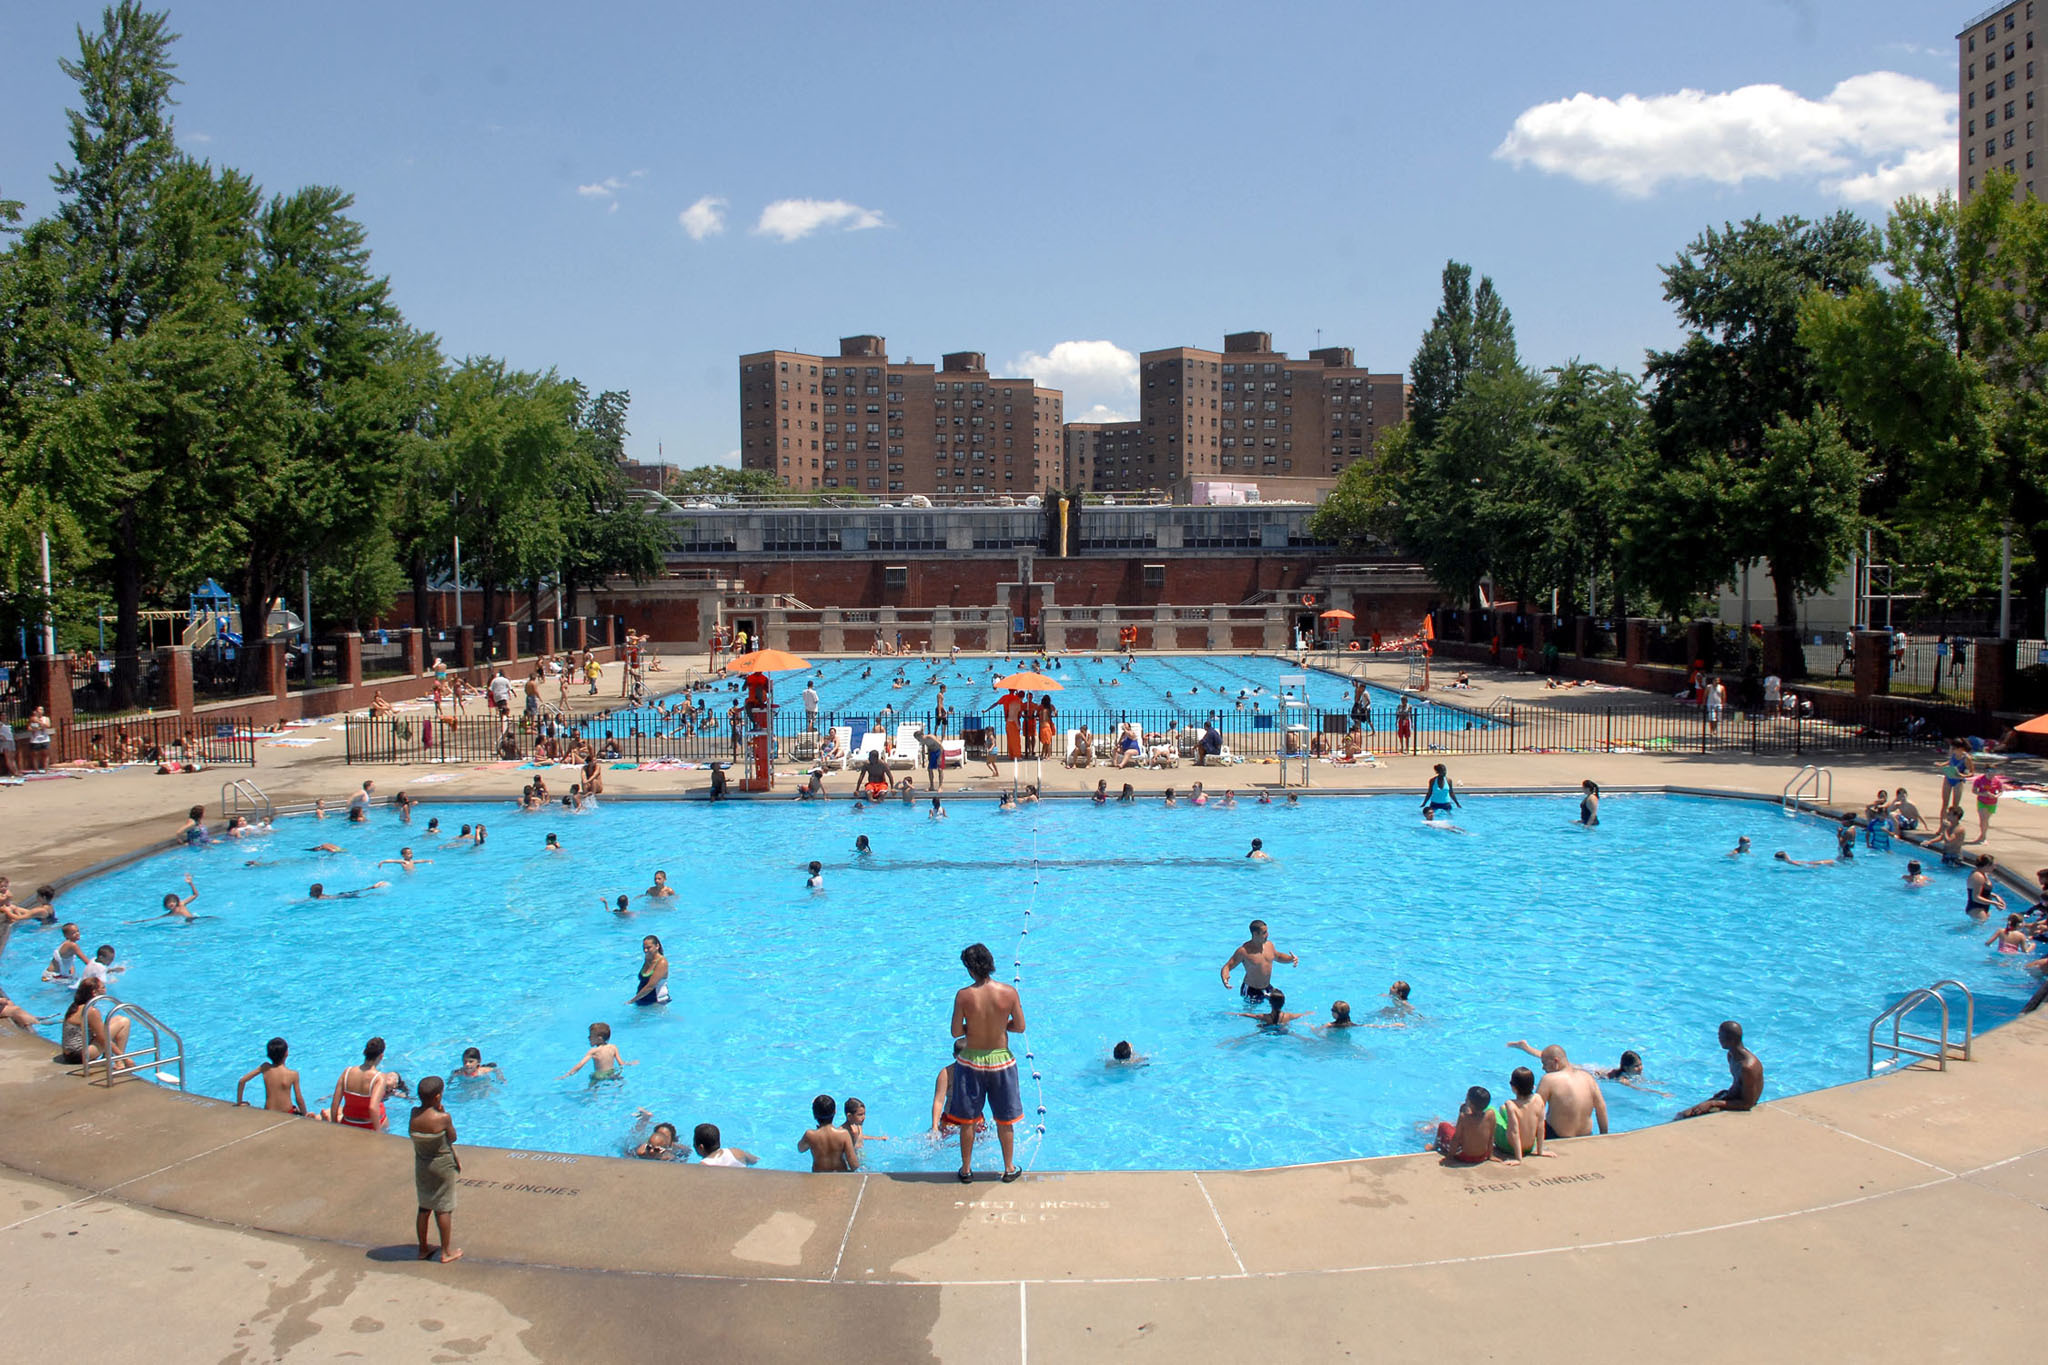 Zwembad Does 12 Best Public Pools Nyc Has For Swimming In During The Summer